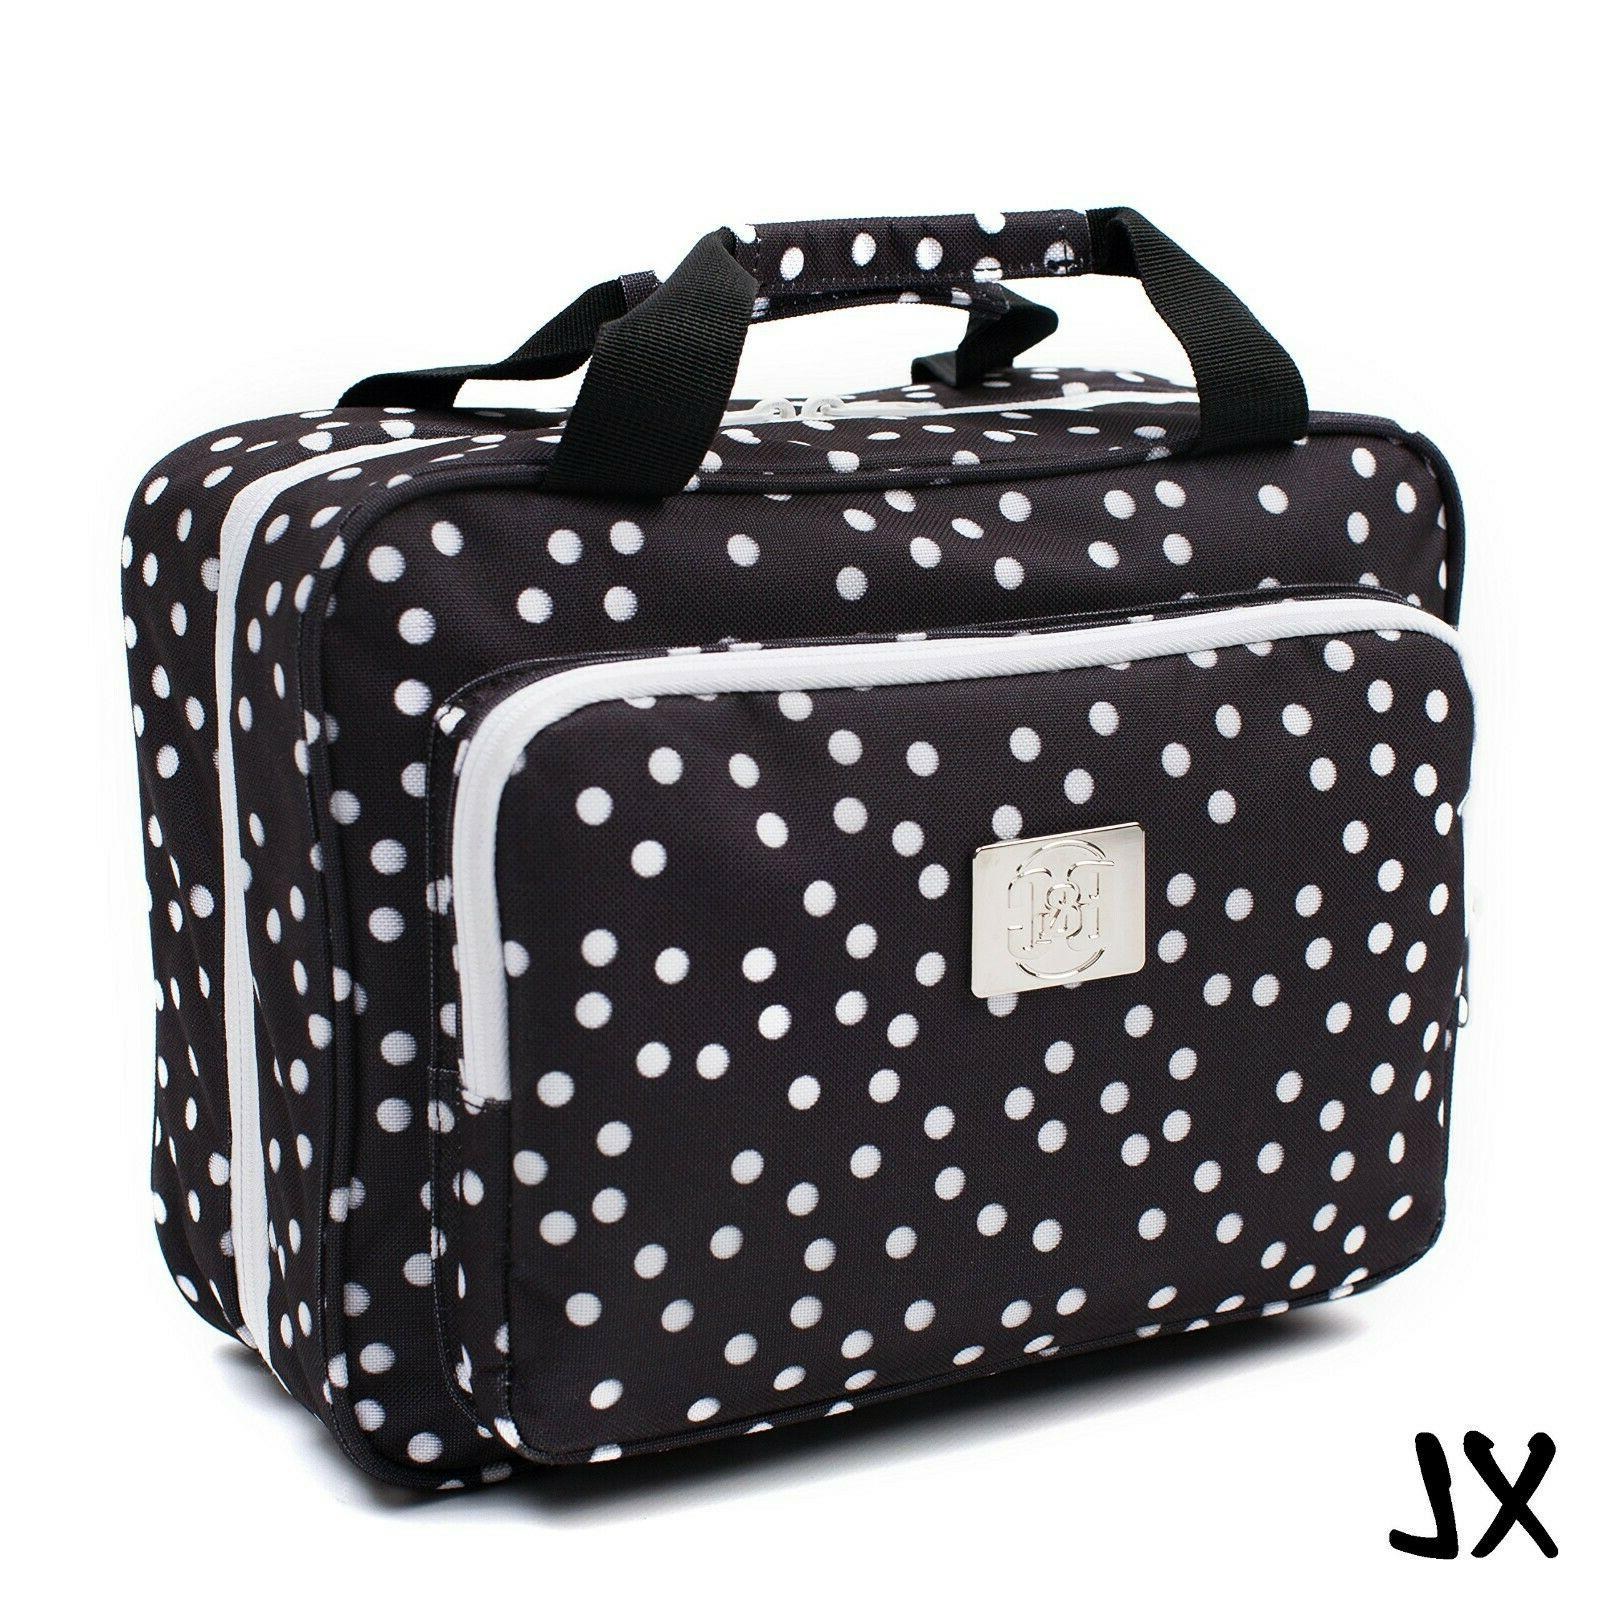 large versatile travel cosmetic bag perfect hanging